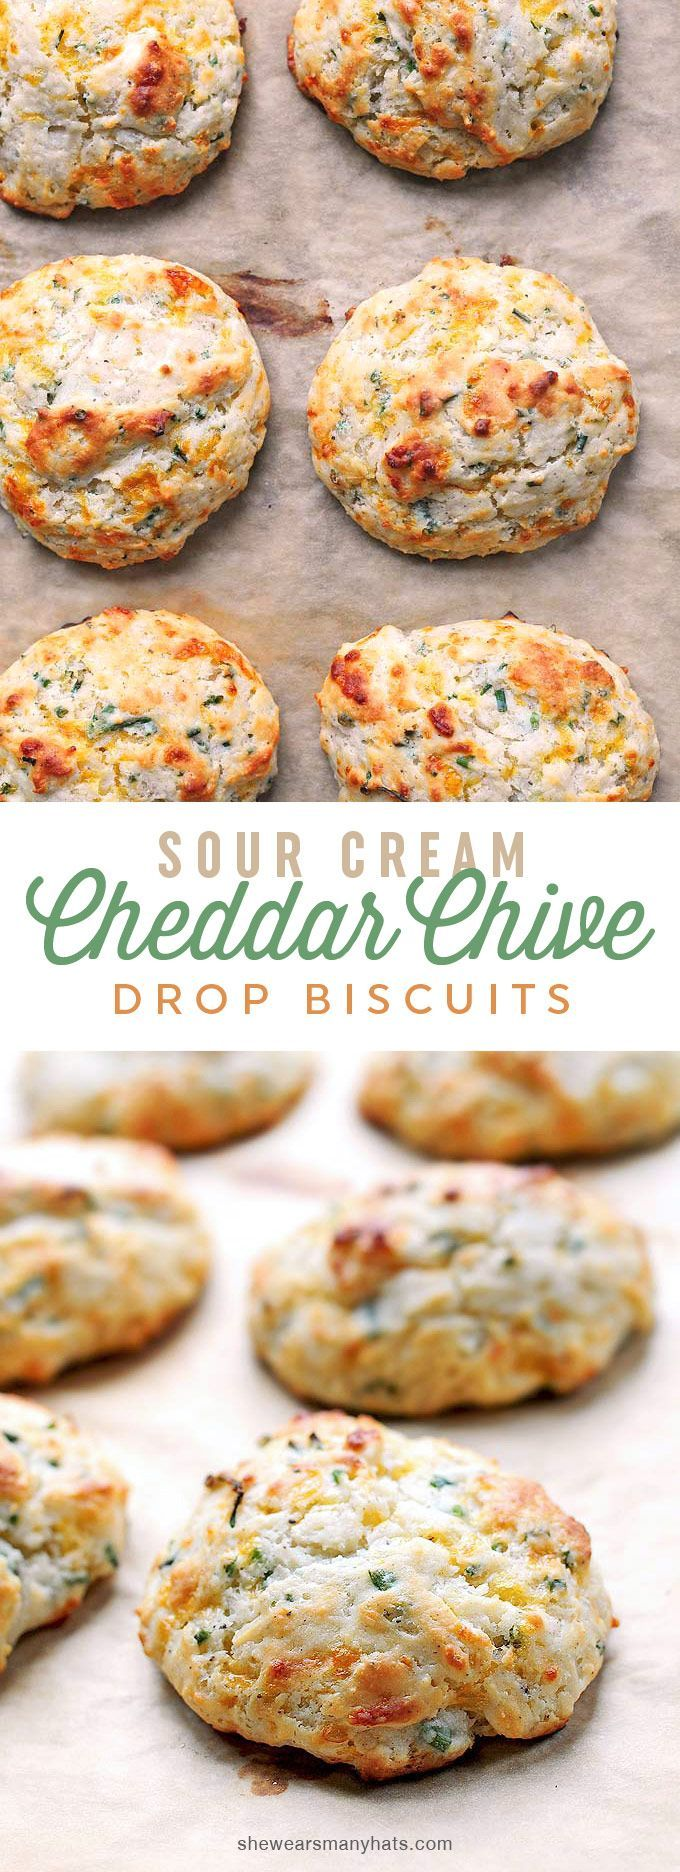 Easy Sour Cream Cheddar Chive Drop Biscuits Recipe | shewearsmanyhats.com